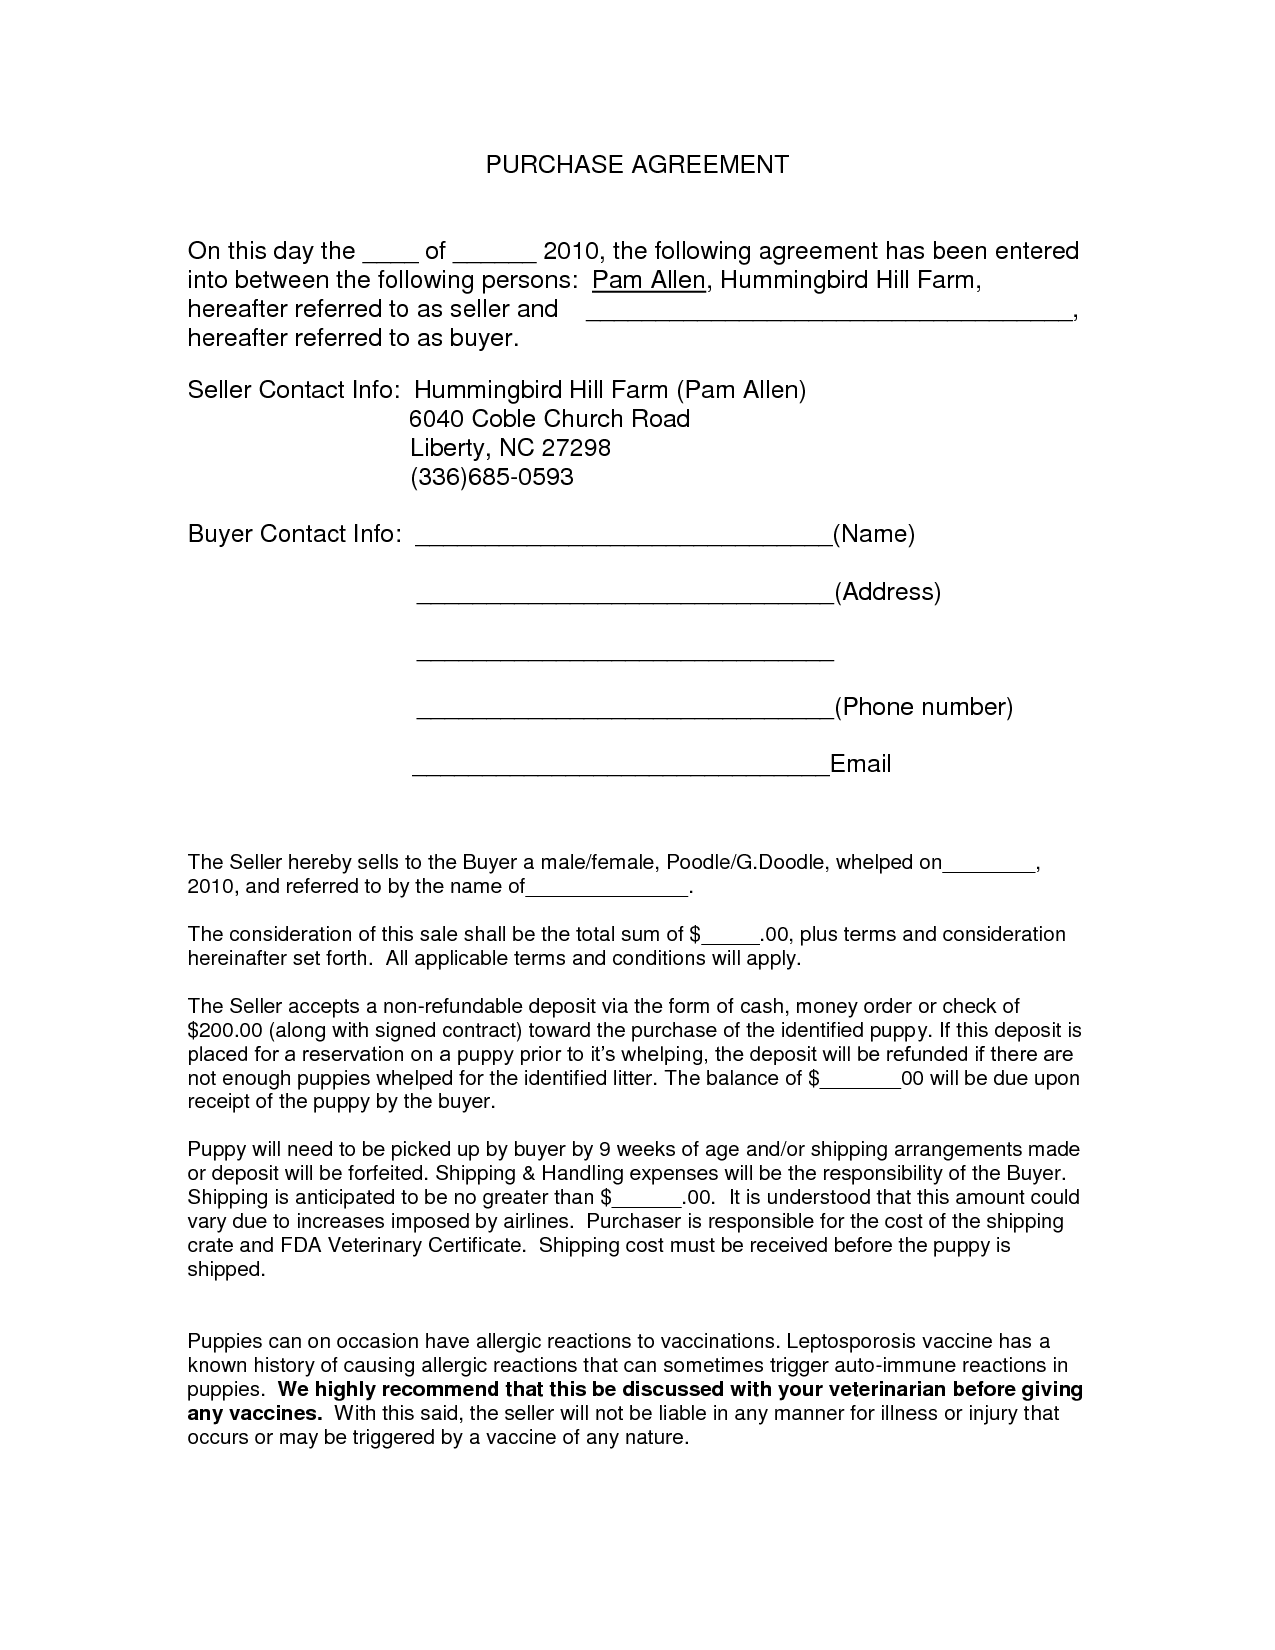 Auto Purchase Agreement Form - DOC by nyy13910 - purchase contract ...